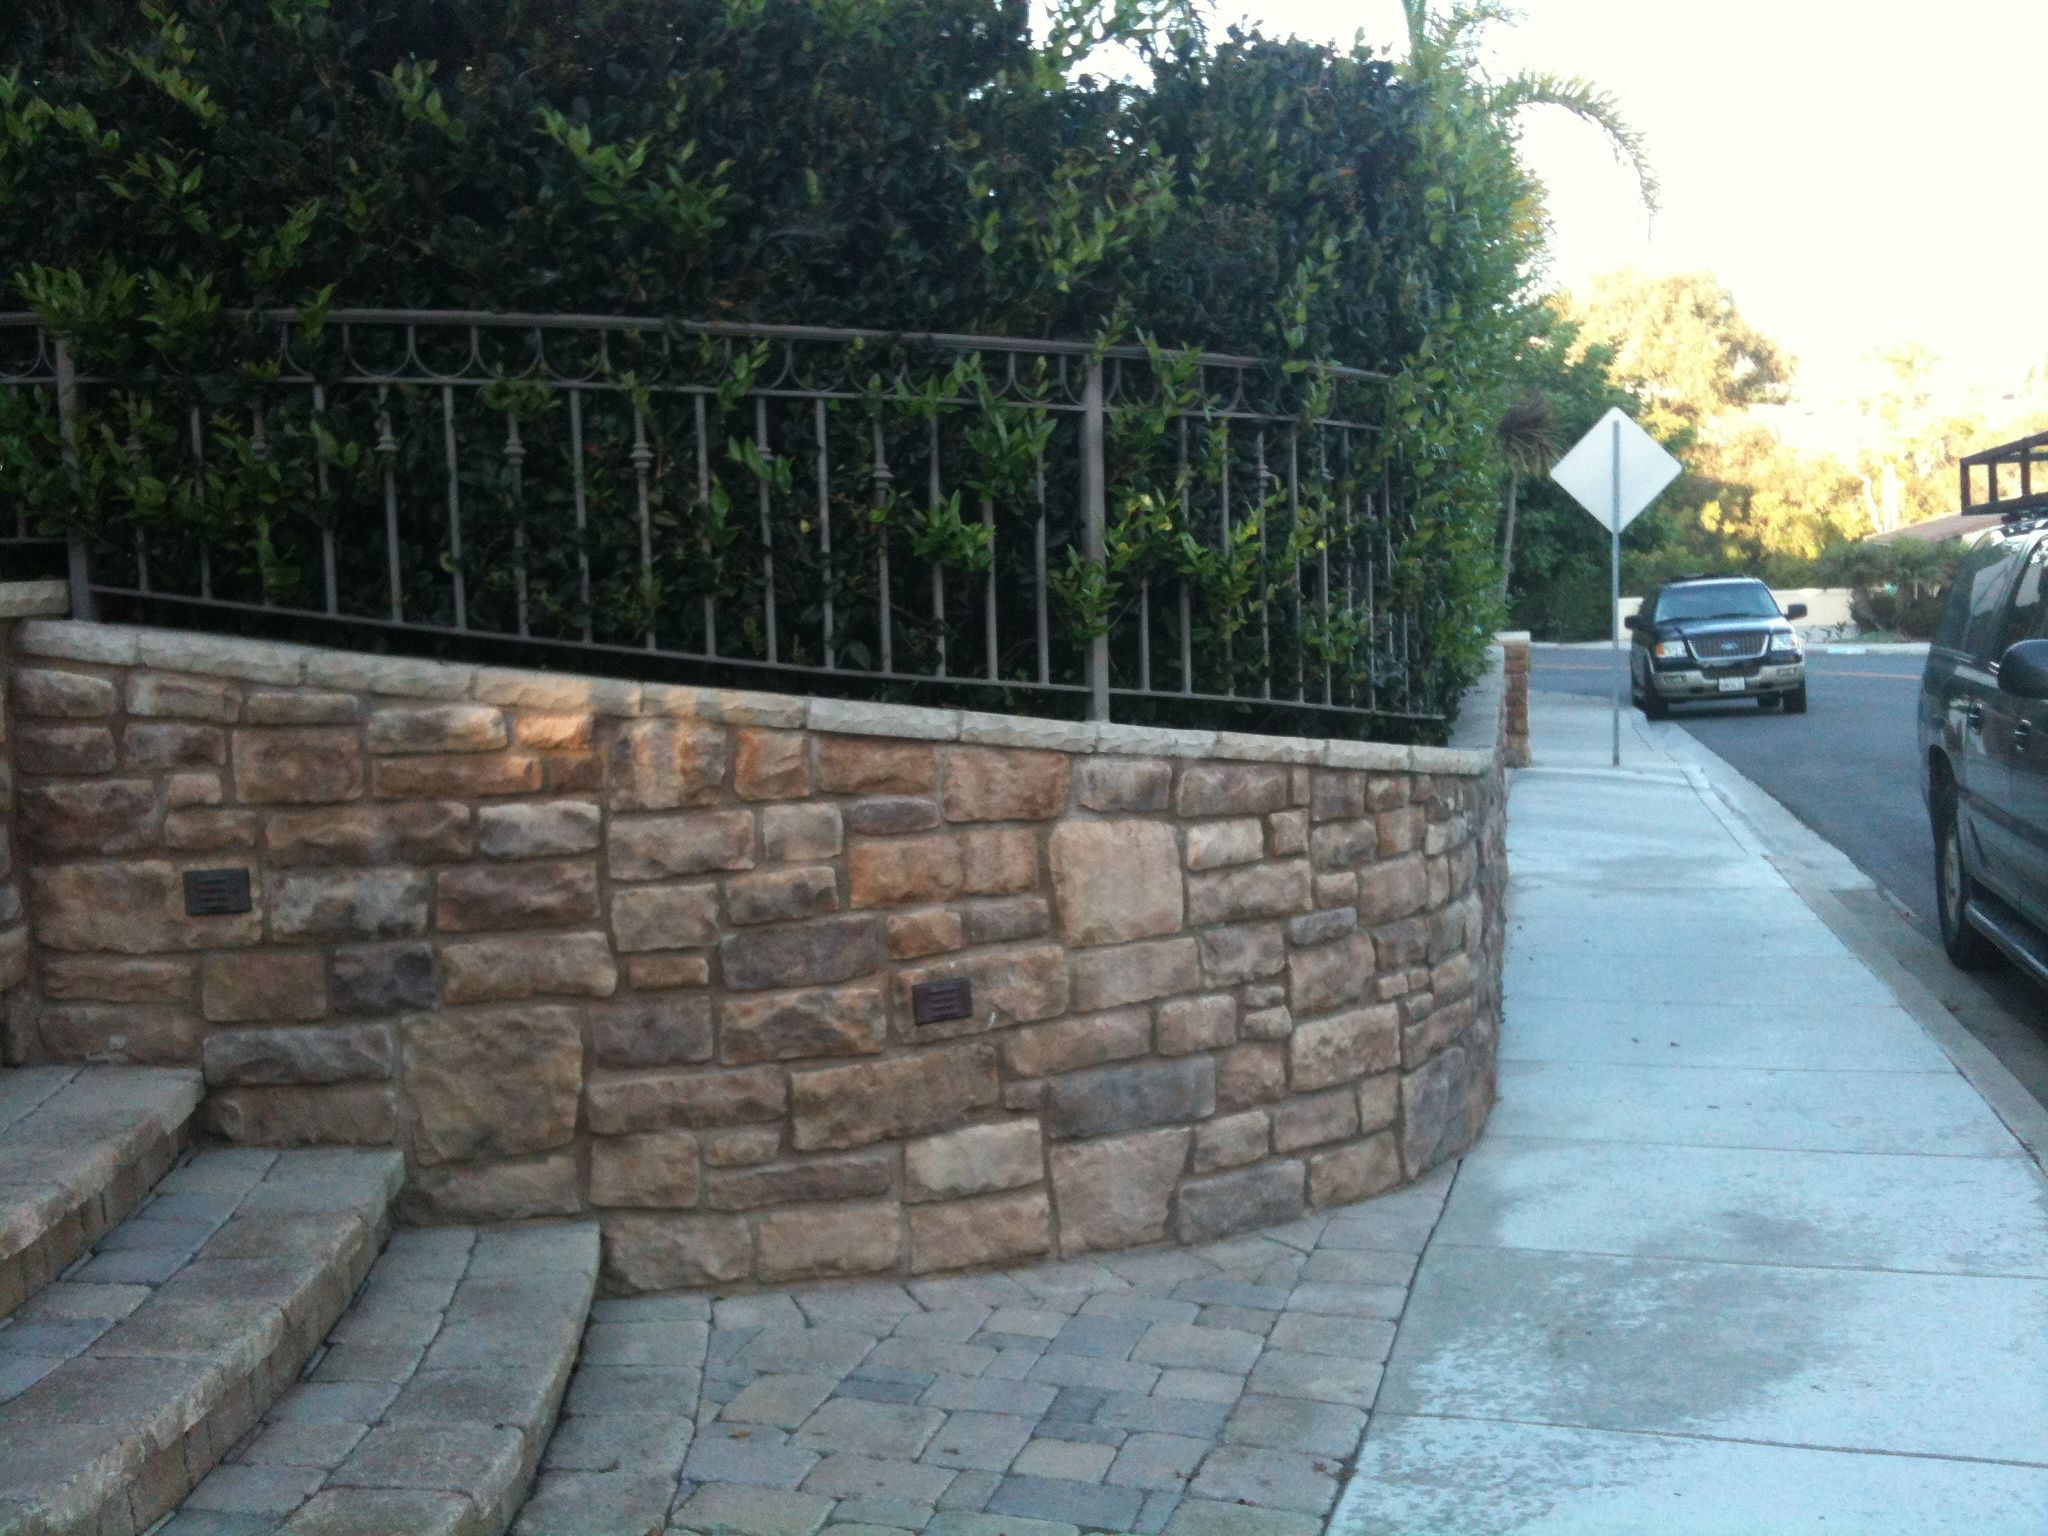 Curved stairs stone work on retaining wall fence on wall for Curved garden wall ideas